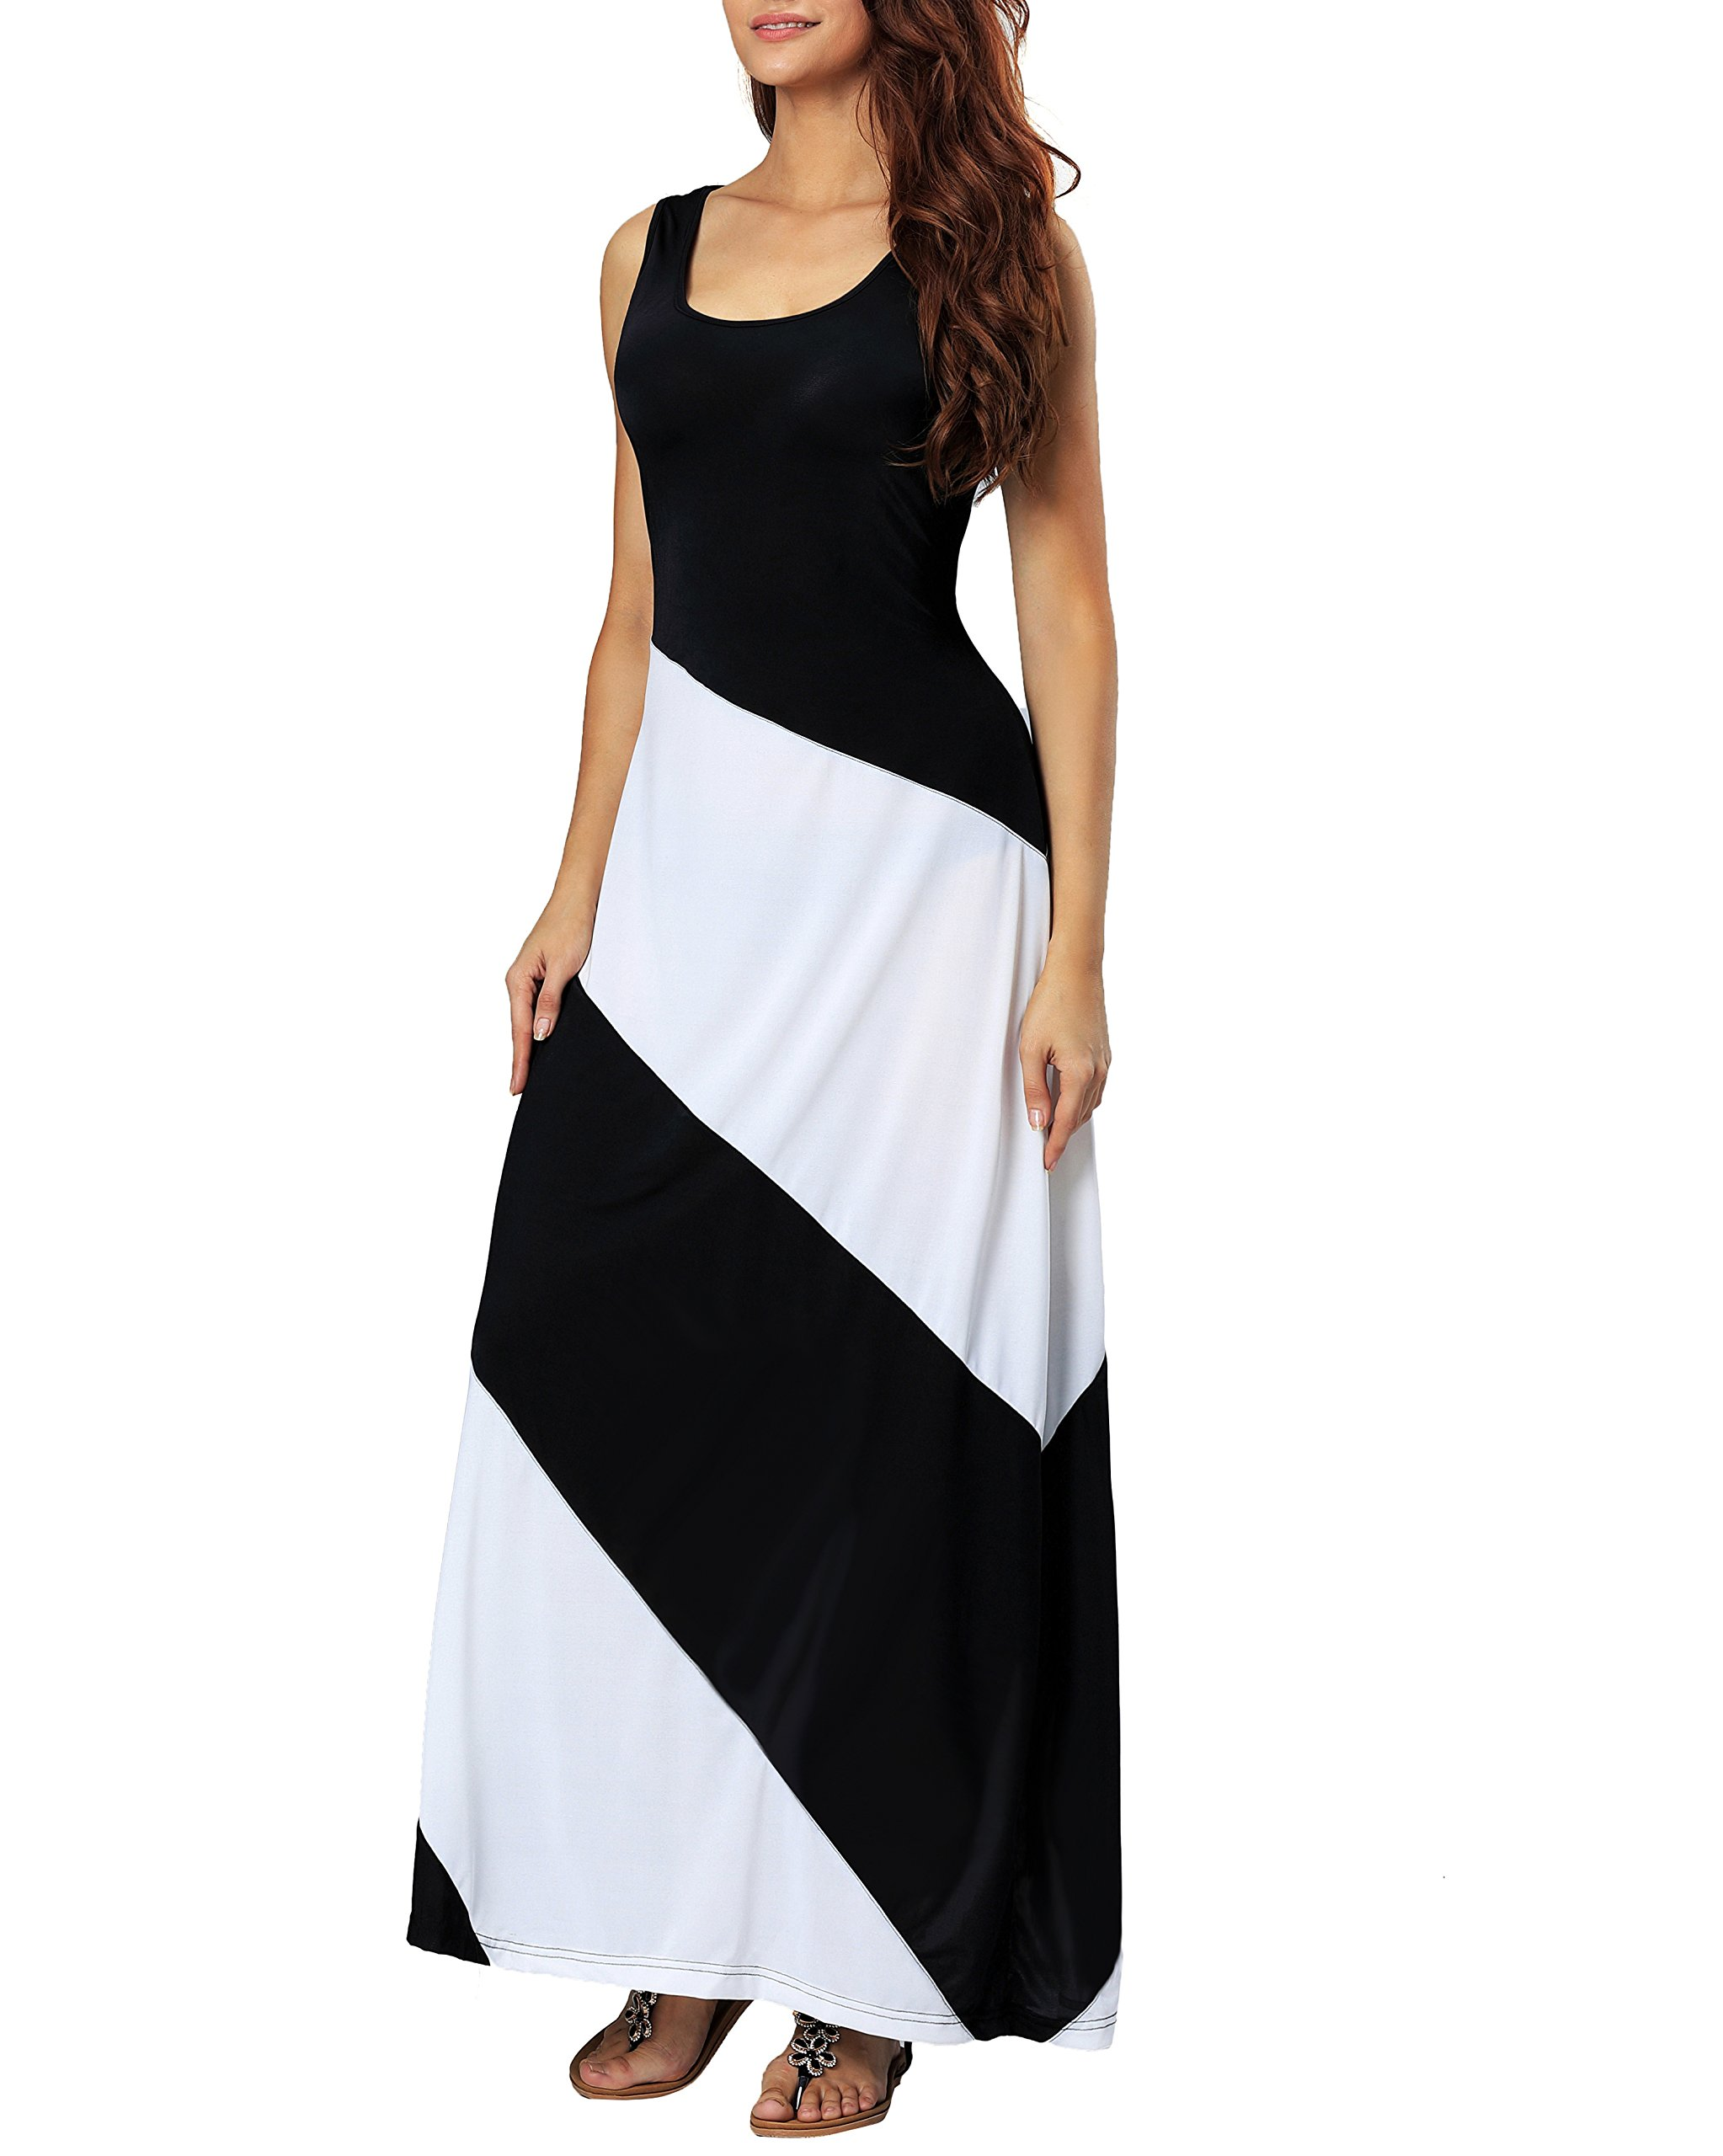 Aofur Summer Women Casual Striped Sleeveless Beach Maxi Dress Plus Size Evening Long Skirt (XXXX-Large, Black)